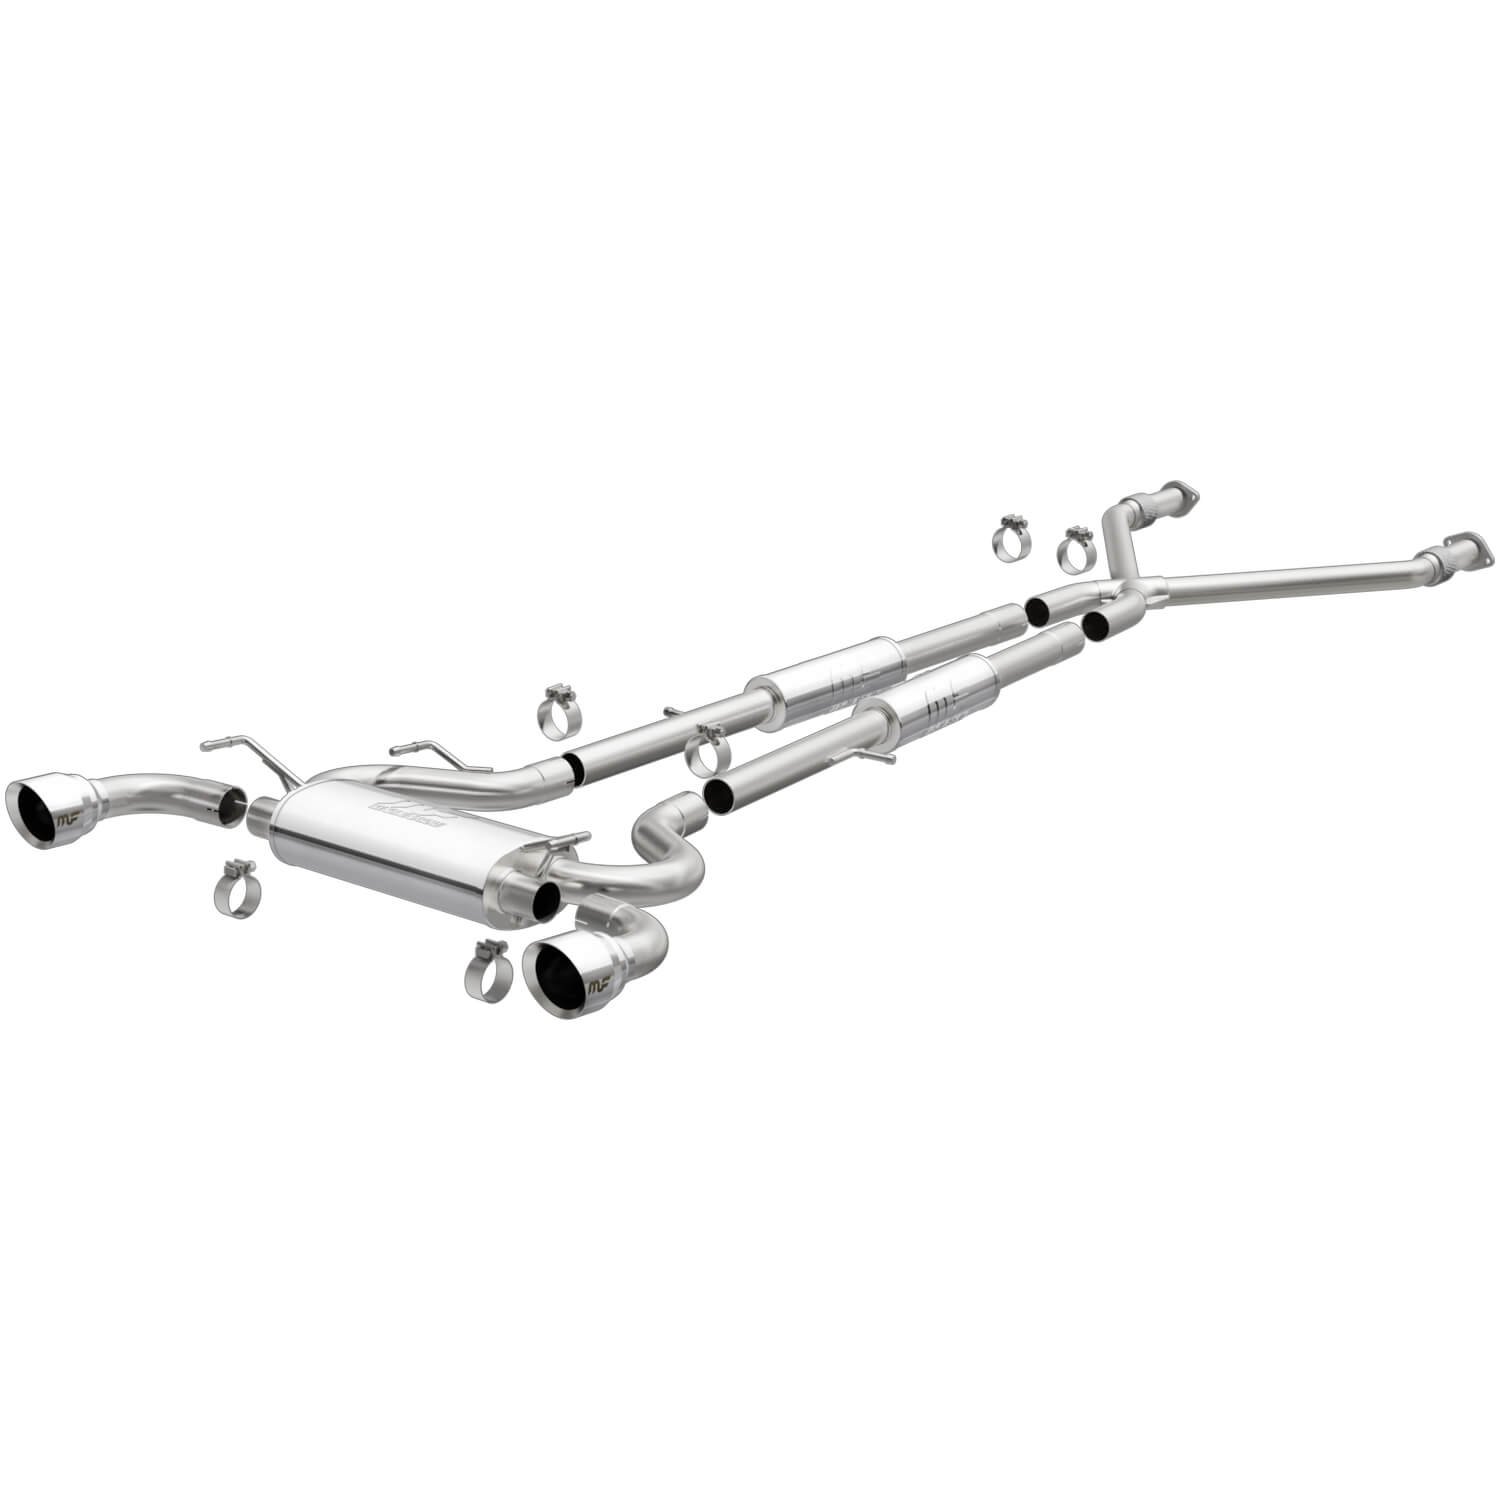 Magnaflow 16820: Street Series Cat-Back Exhaust System